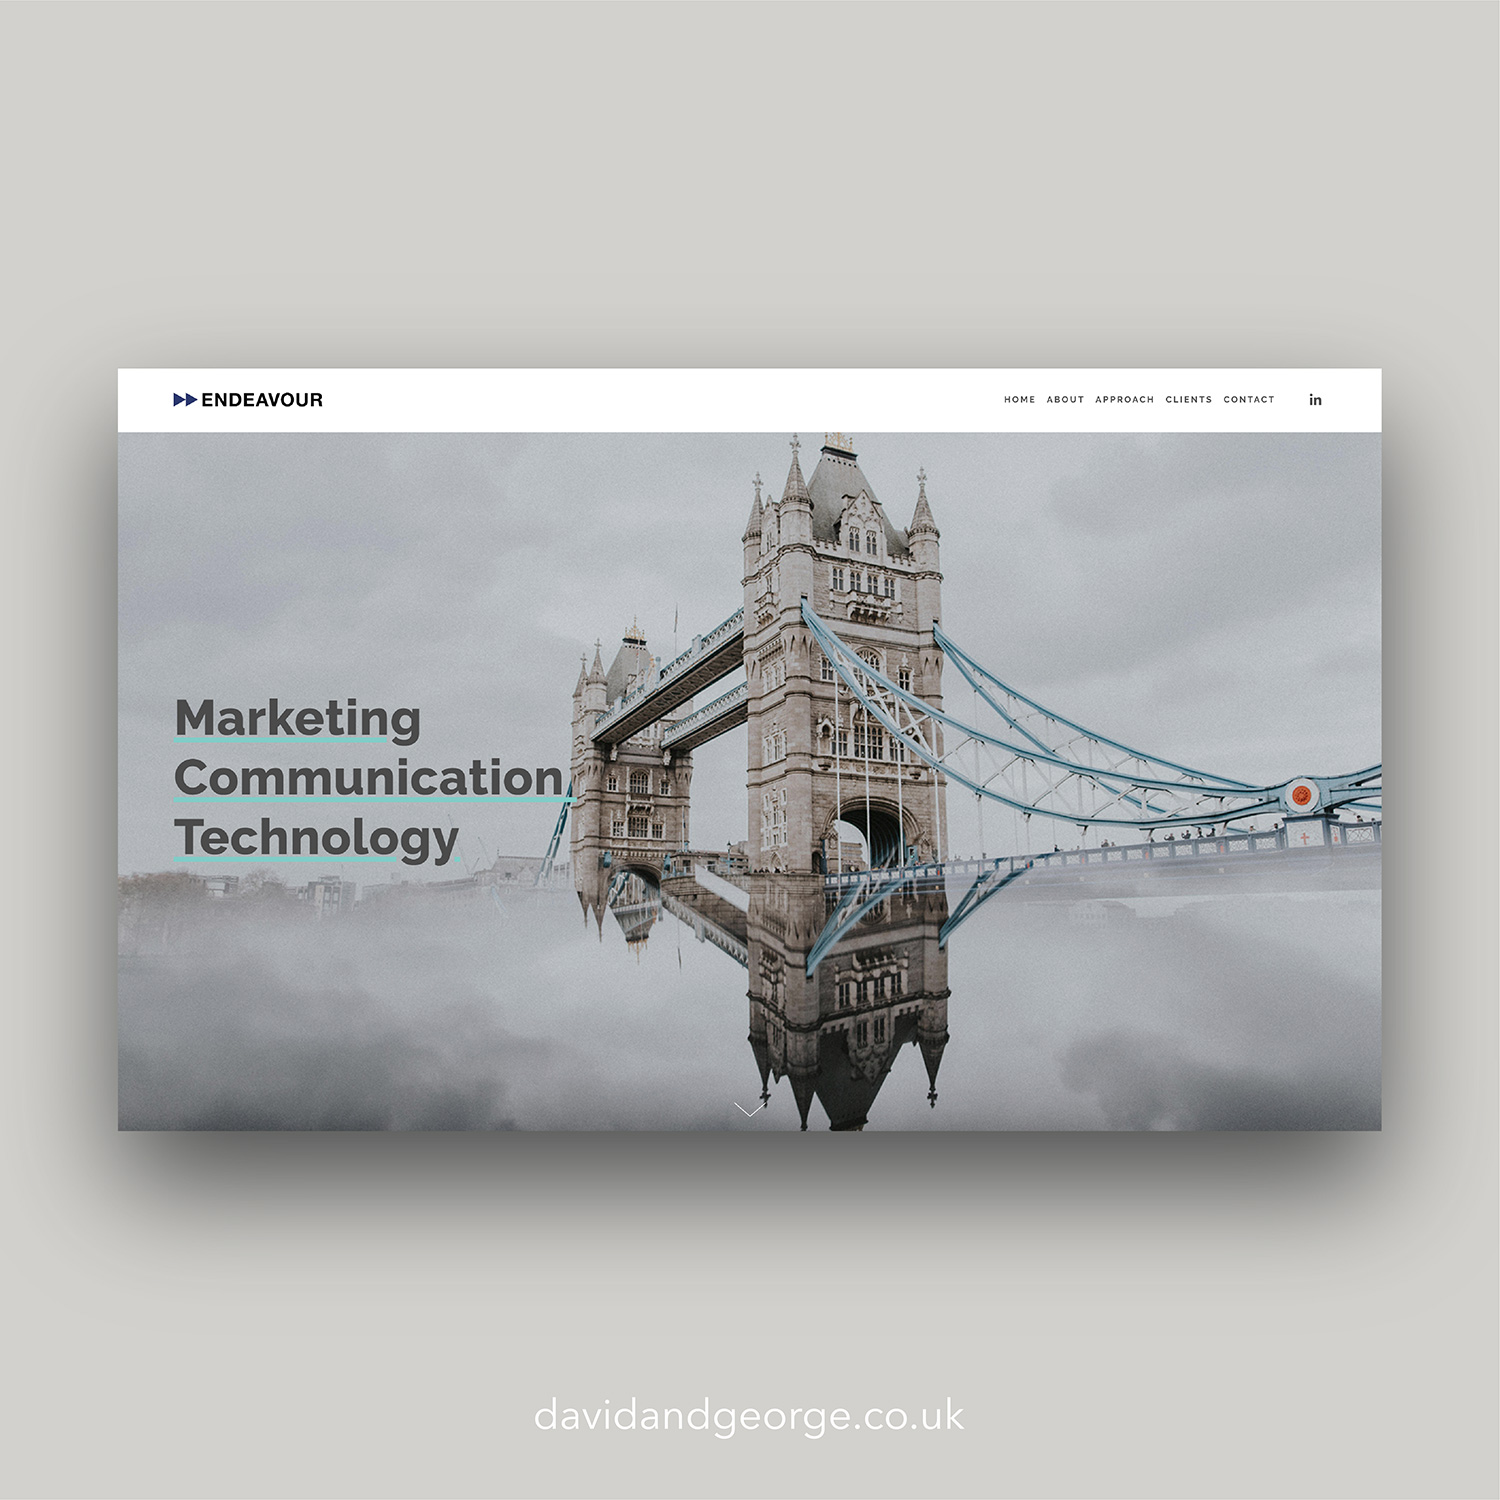 squarespace-website-design-london-edinburgh-uk-david-and-george-endeavour-endvr-business-consultant.jpg